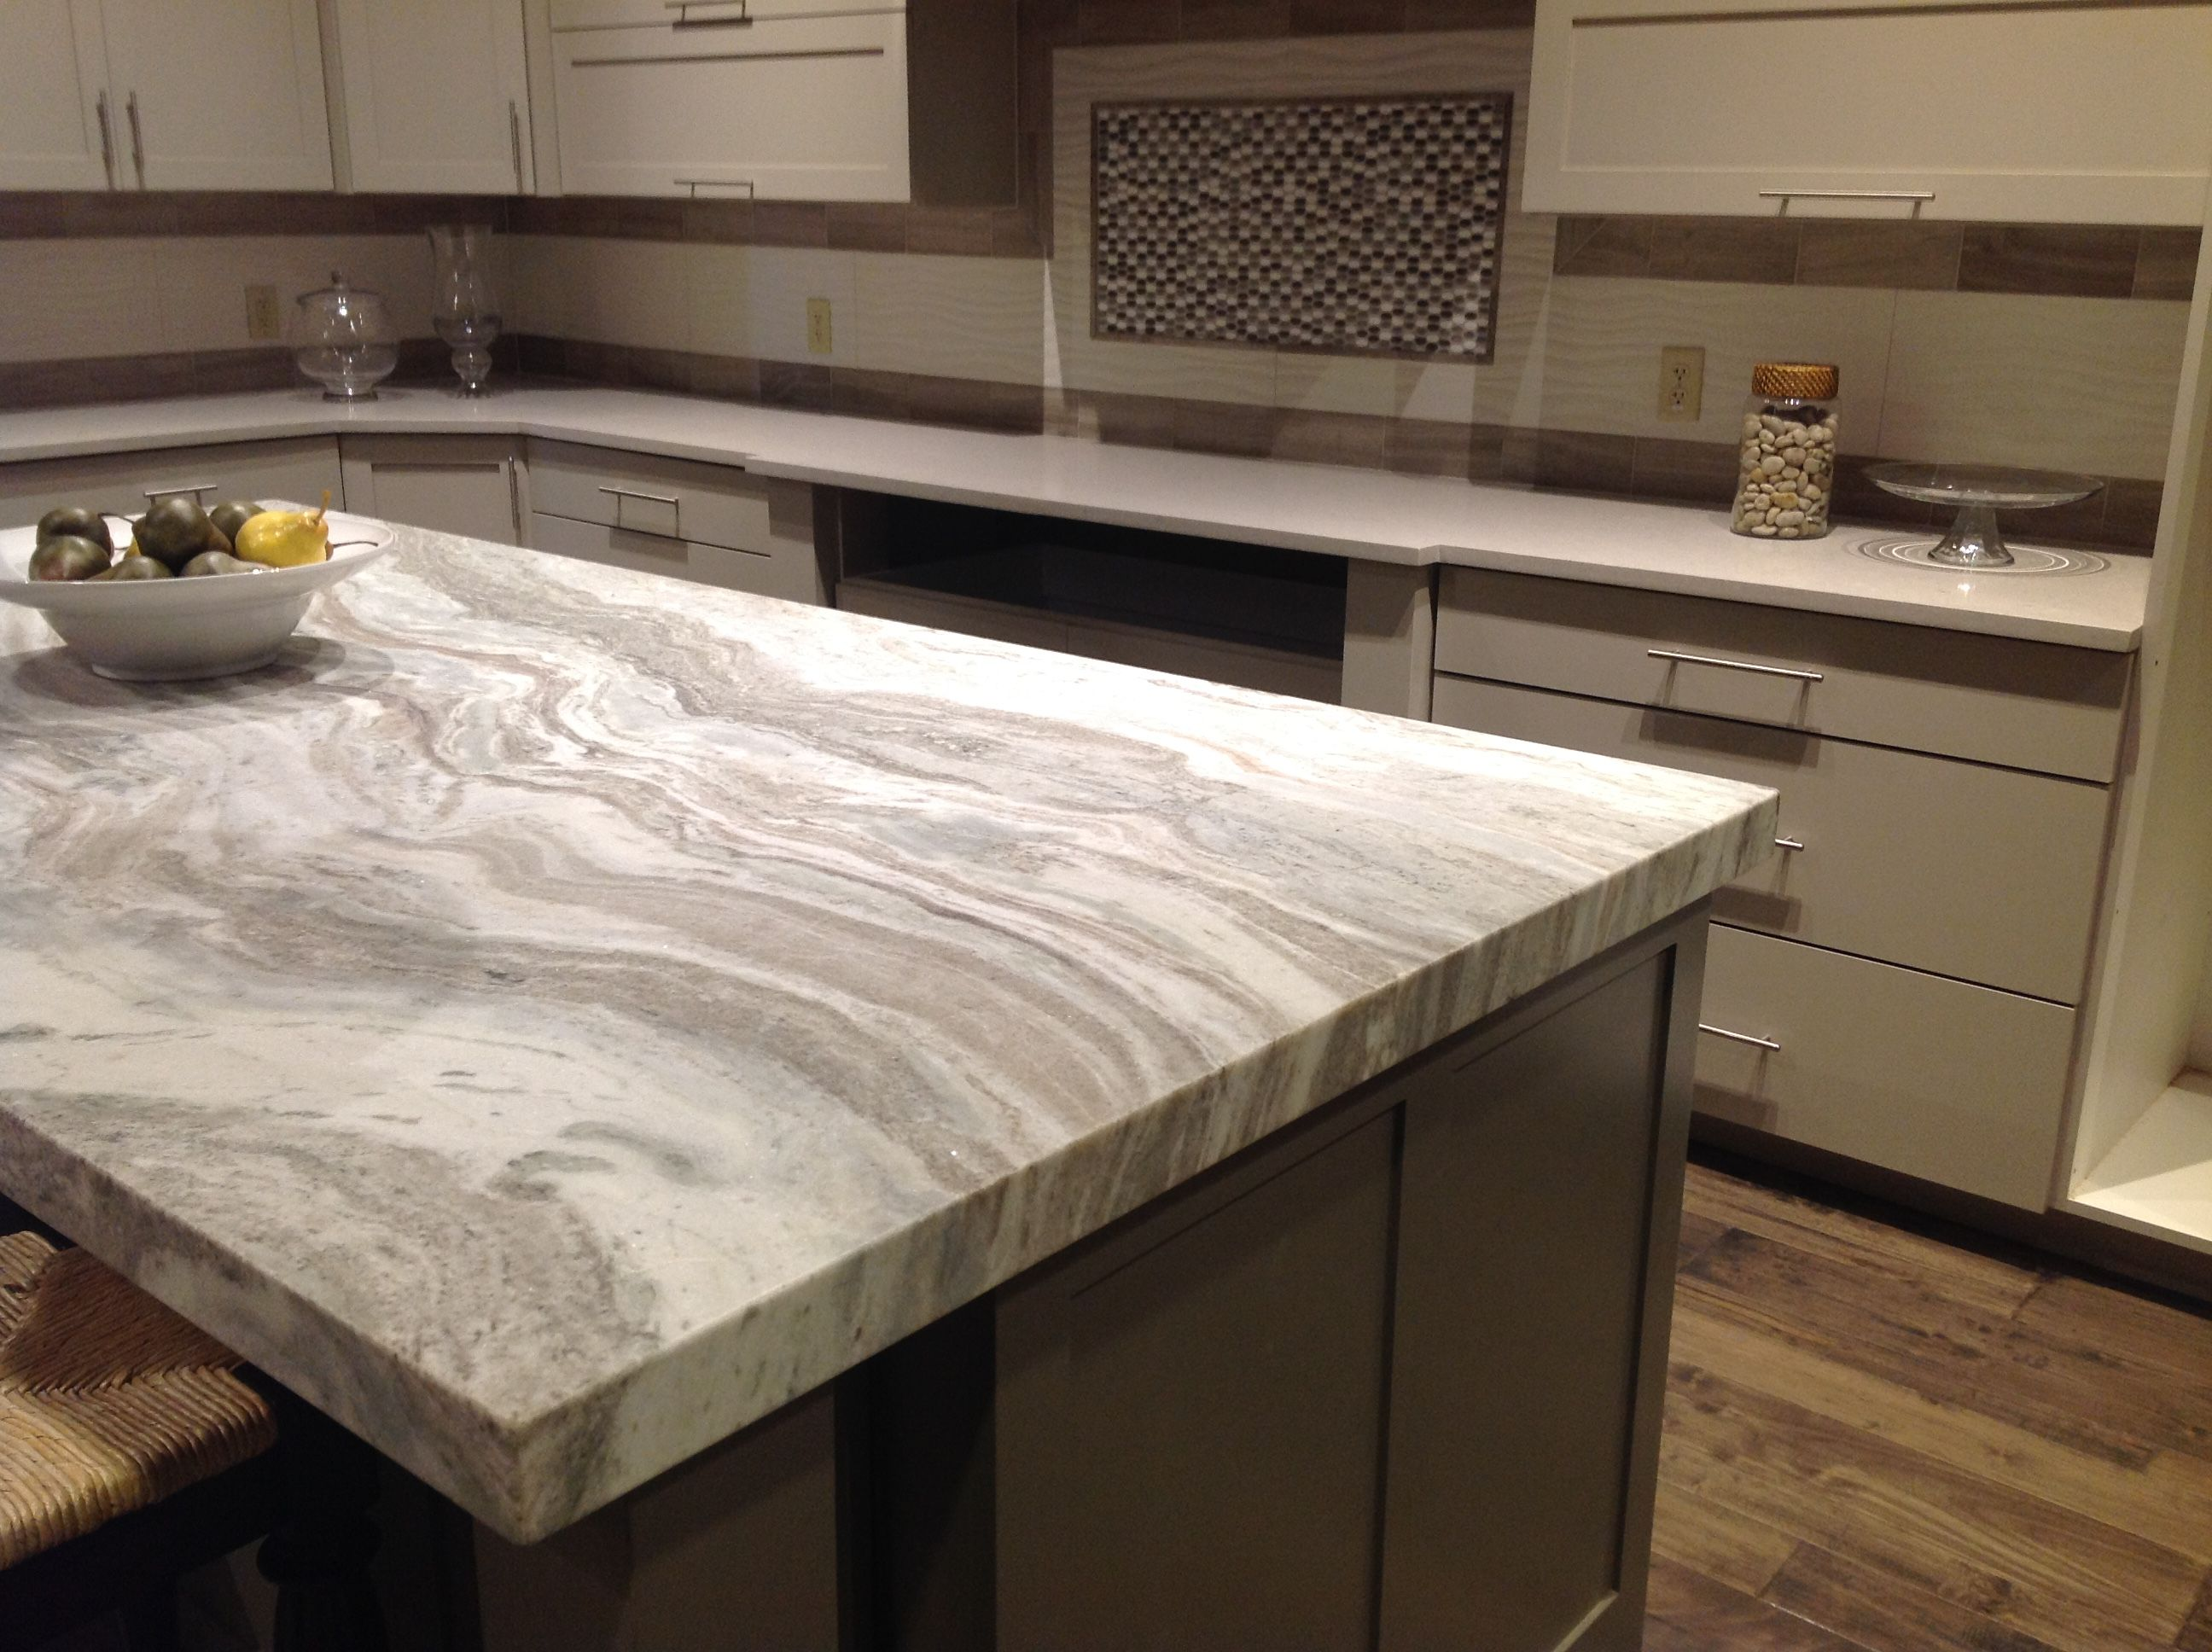 love some of todays countertop trends with alternative finishes  countertops  u2026 love some of todays countertop trends with alternative finishes      rh   pinterest com